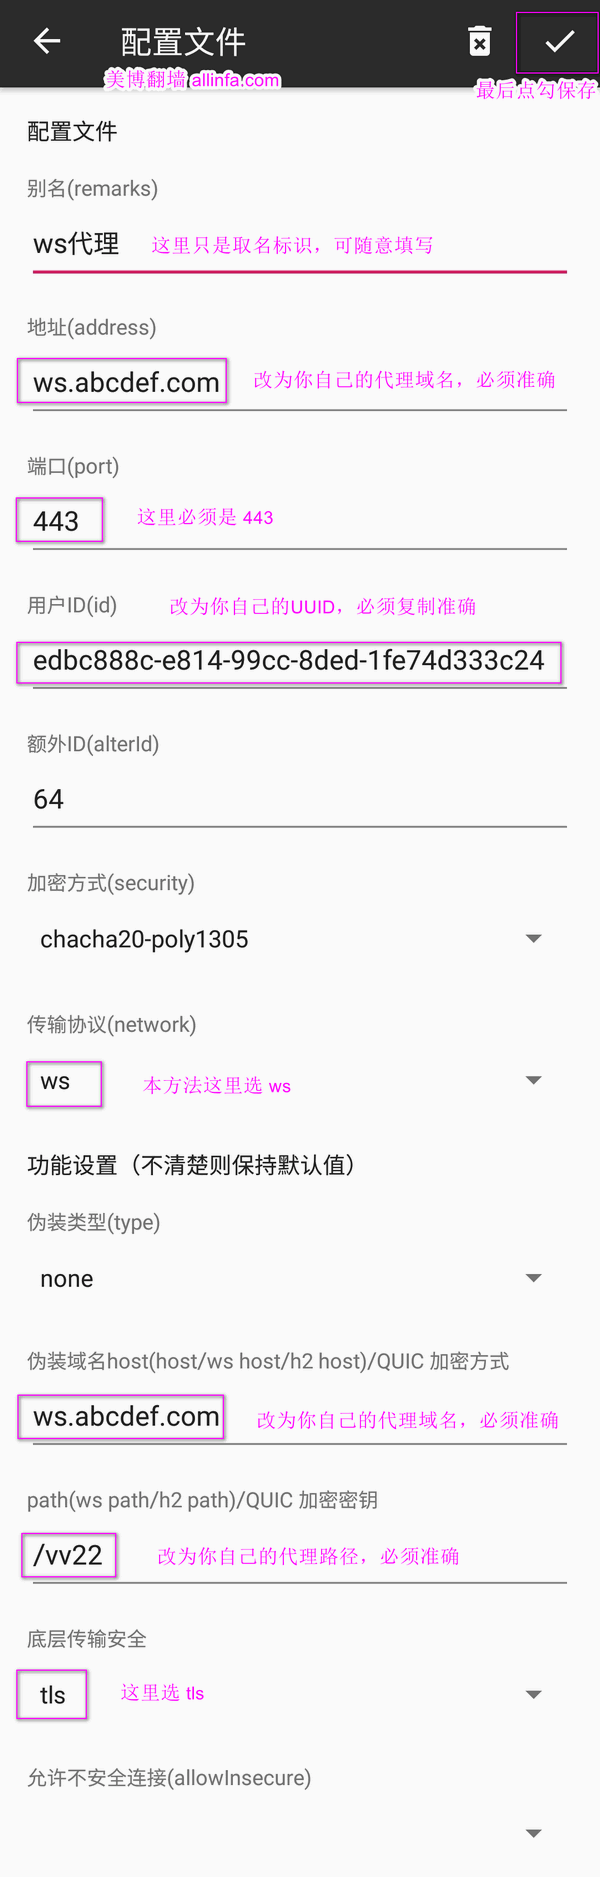 自建最强科学上网2:V2Ray + Caddy + Tls + WebSocket